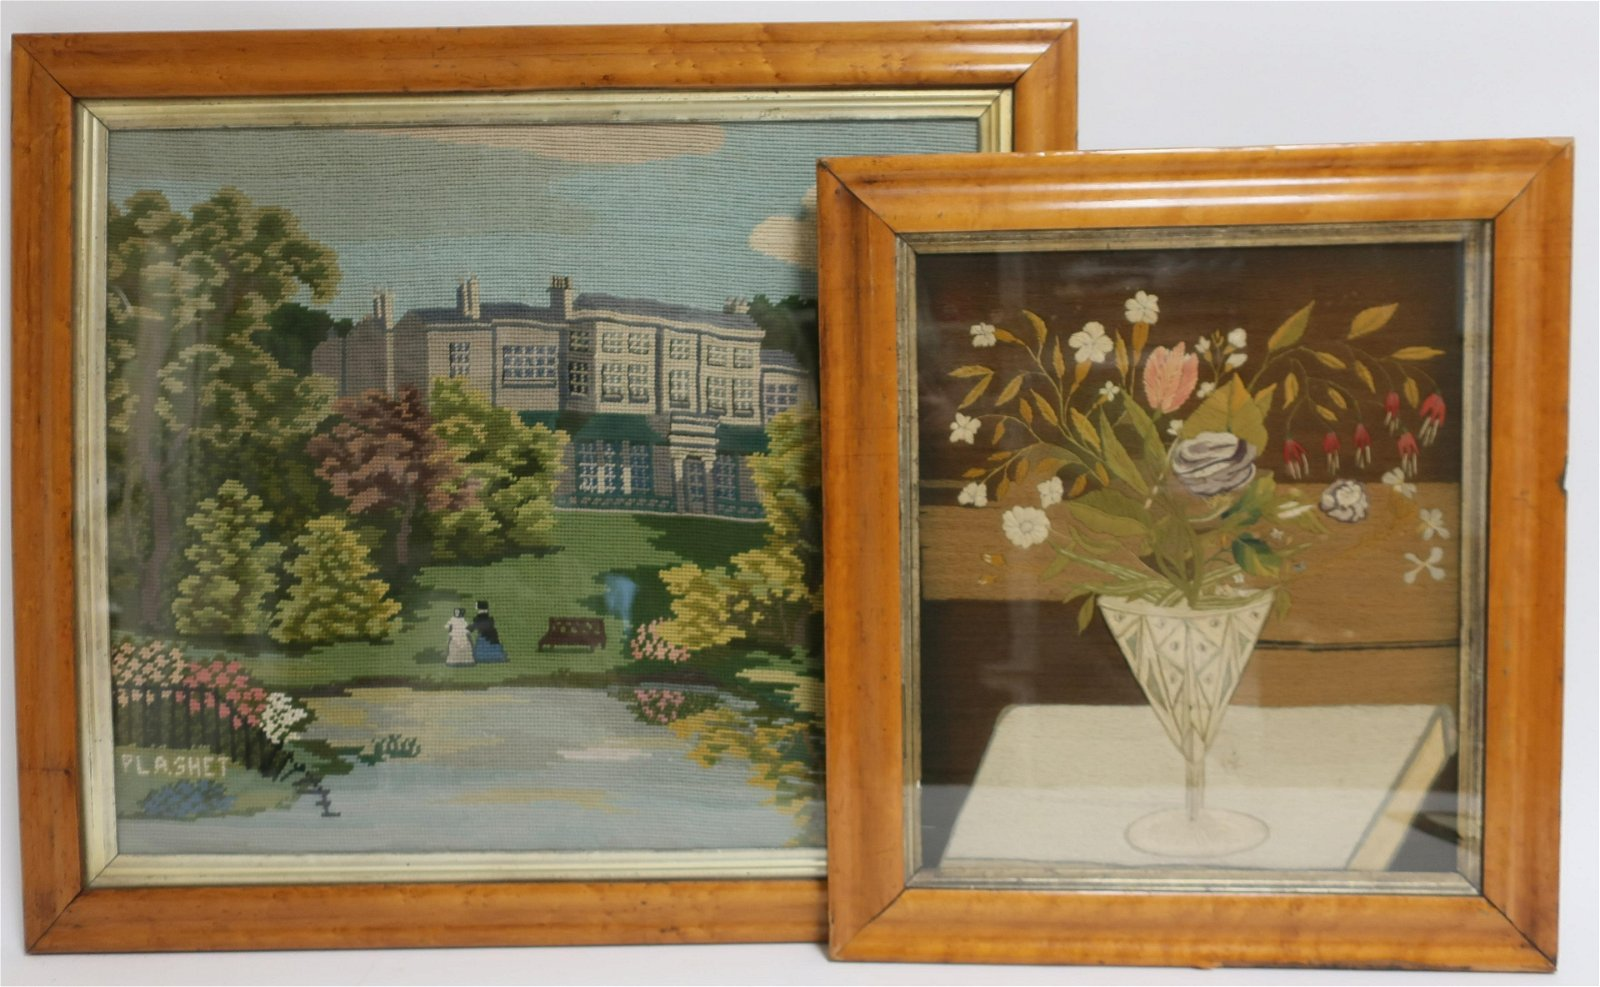 2 Hand Woven Pictures, late 19th/early 20th C.